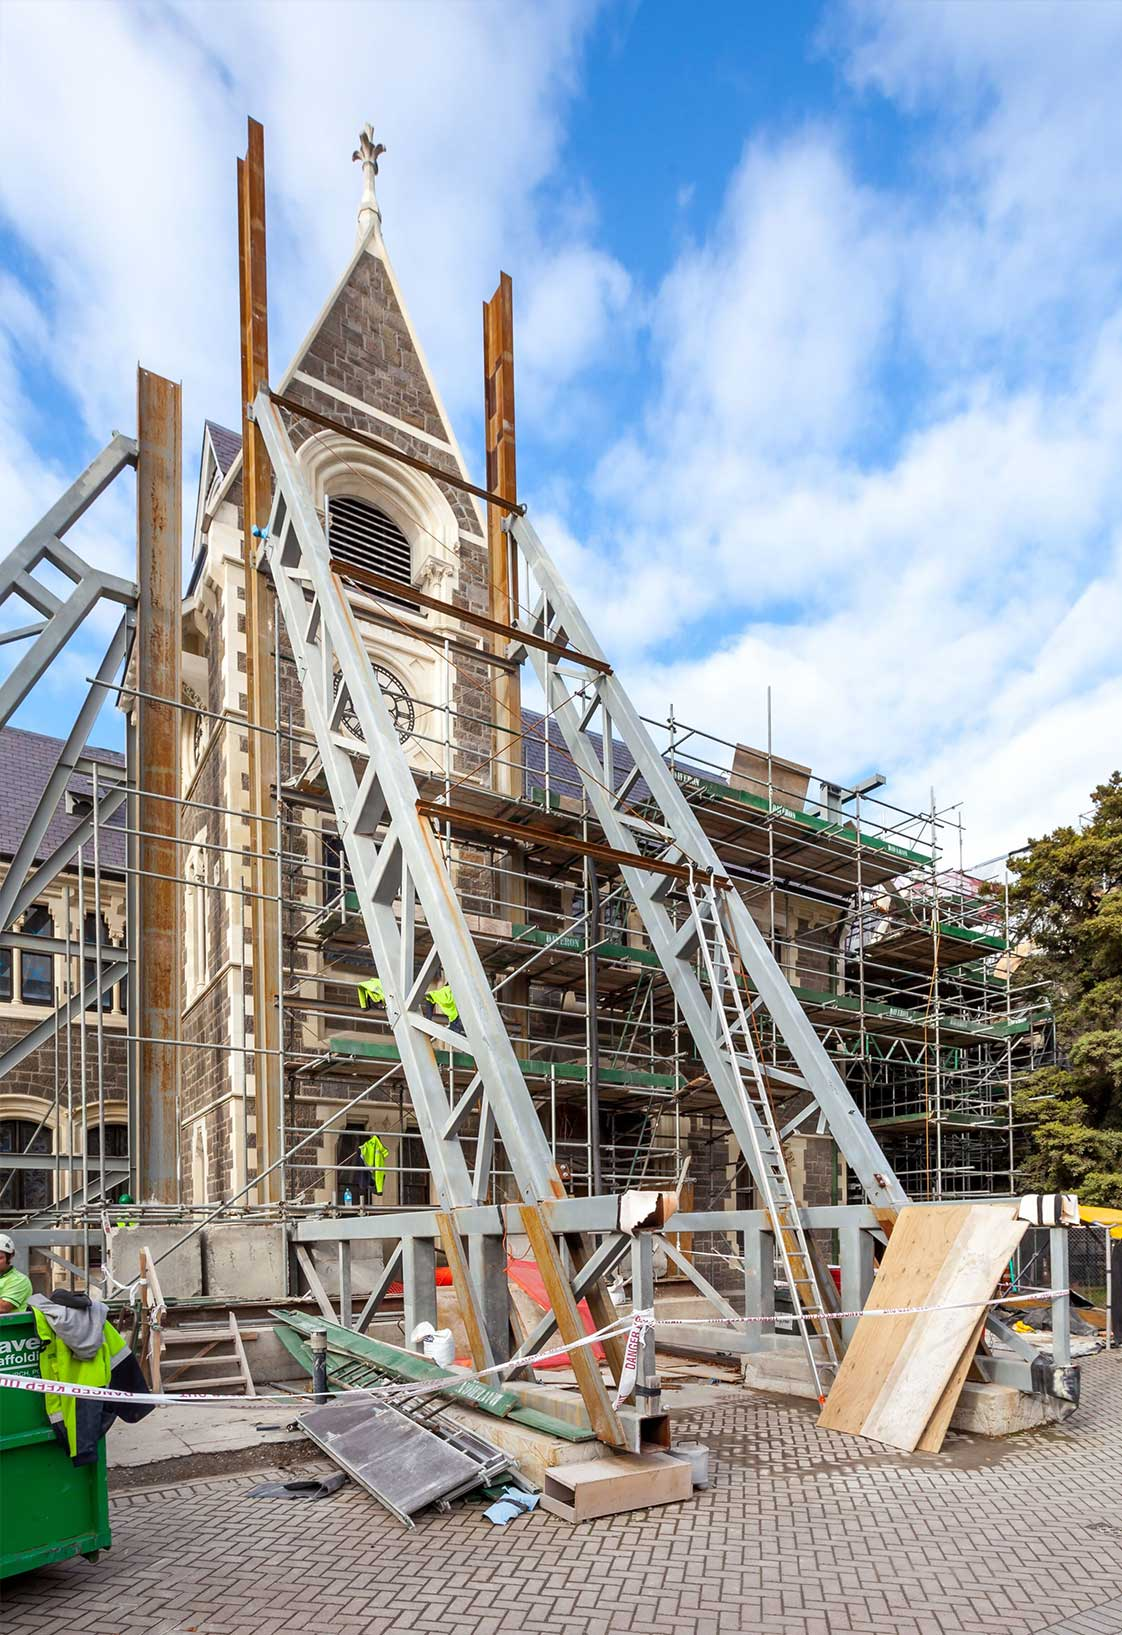 Retrofit of Christchurch Arts Center in New Zealand after Canterbury Earthquake